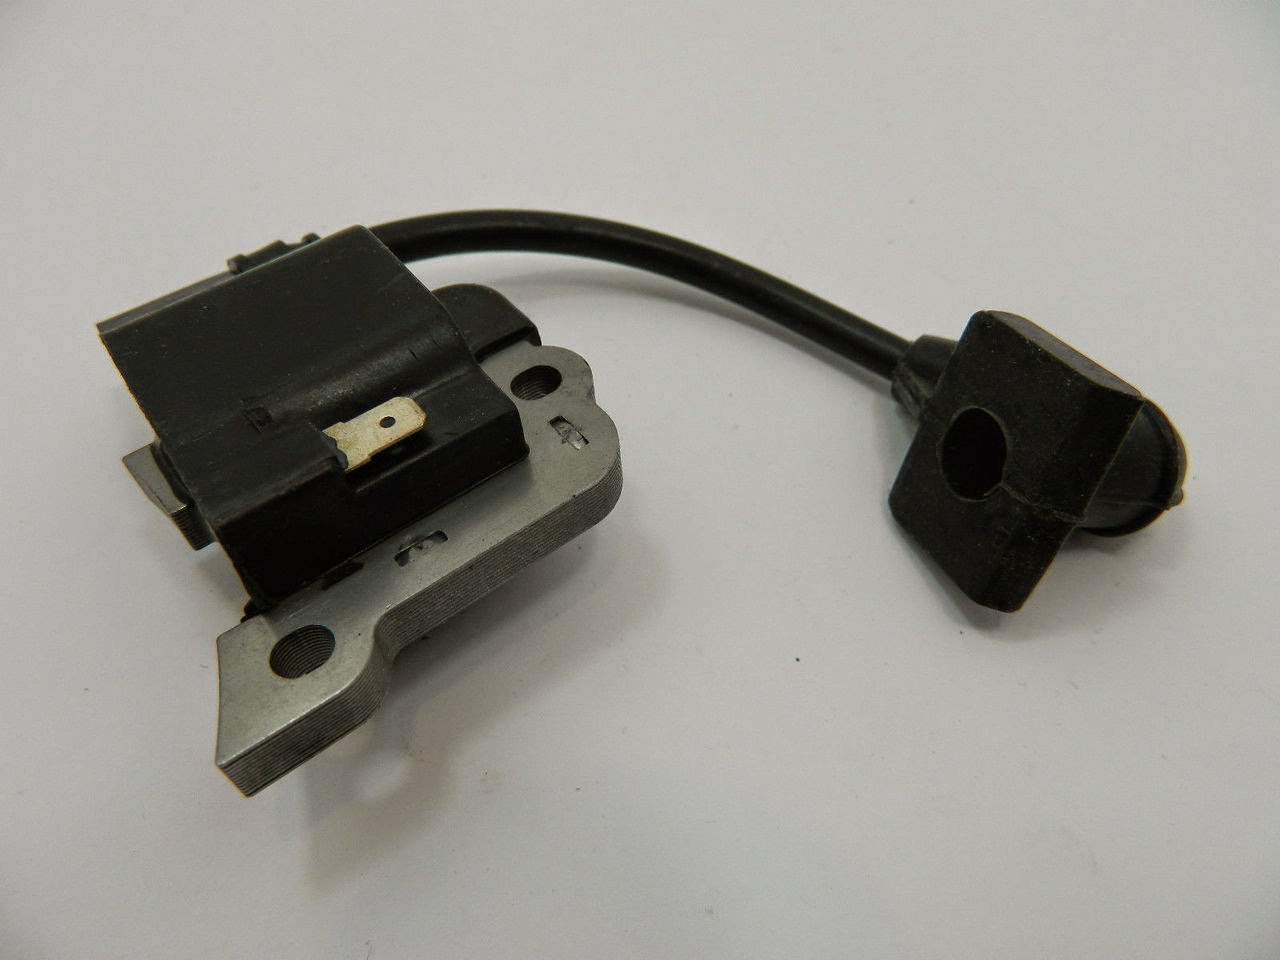 http://www.chainsawpartsonline.co.uk/blower-strimmer-brush-cutter-ignition-coil-module/